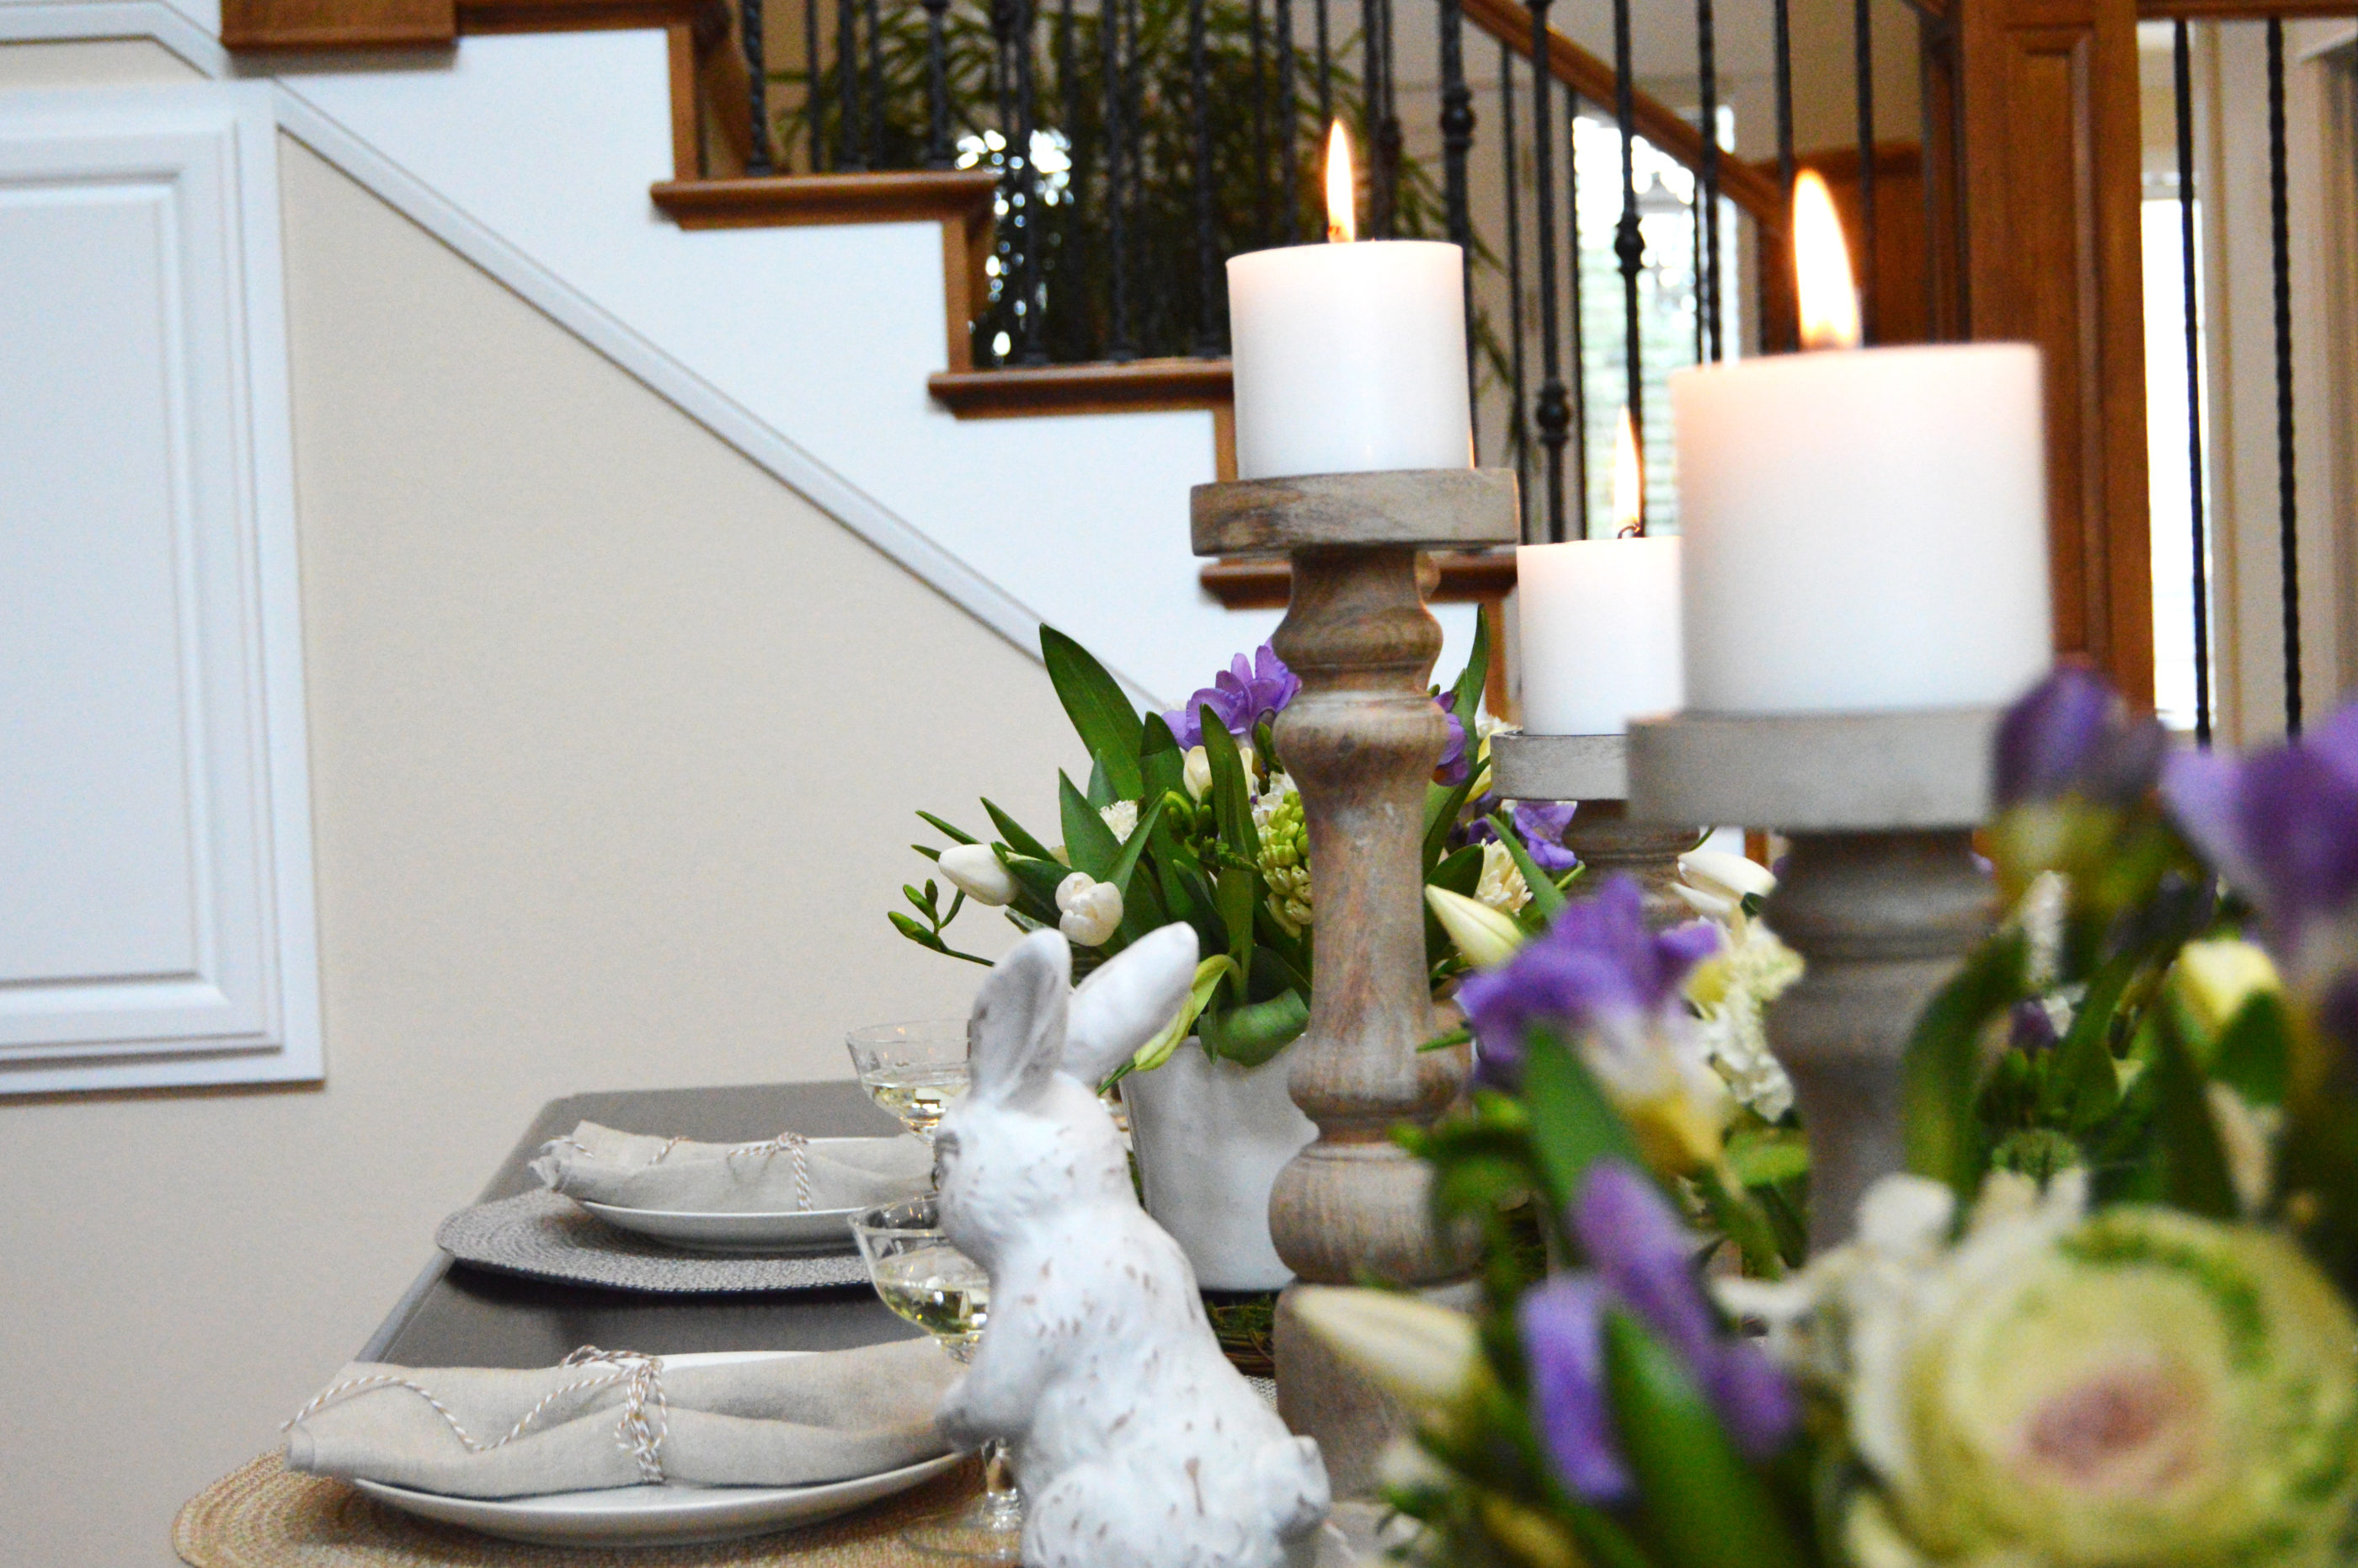 Lovely close-up photo of spring table accessories and candles